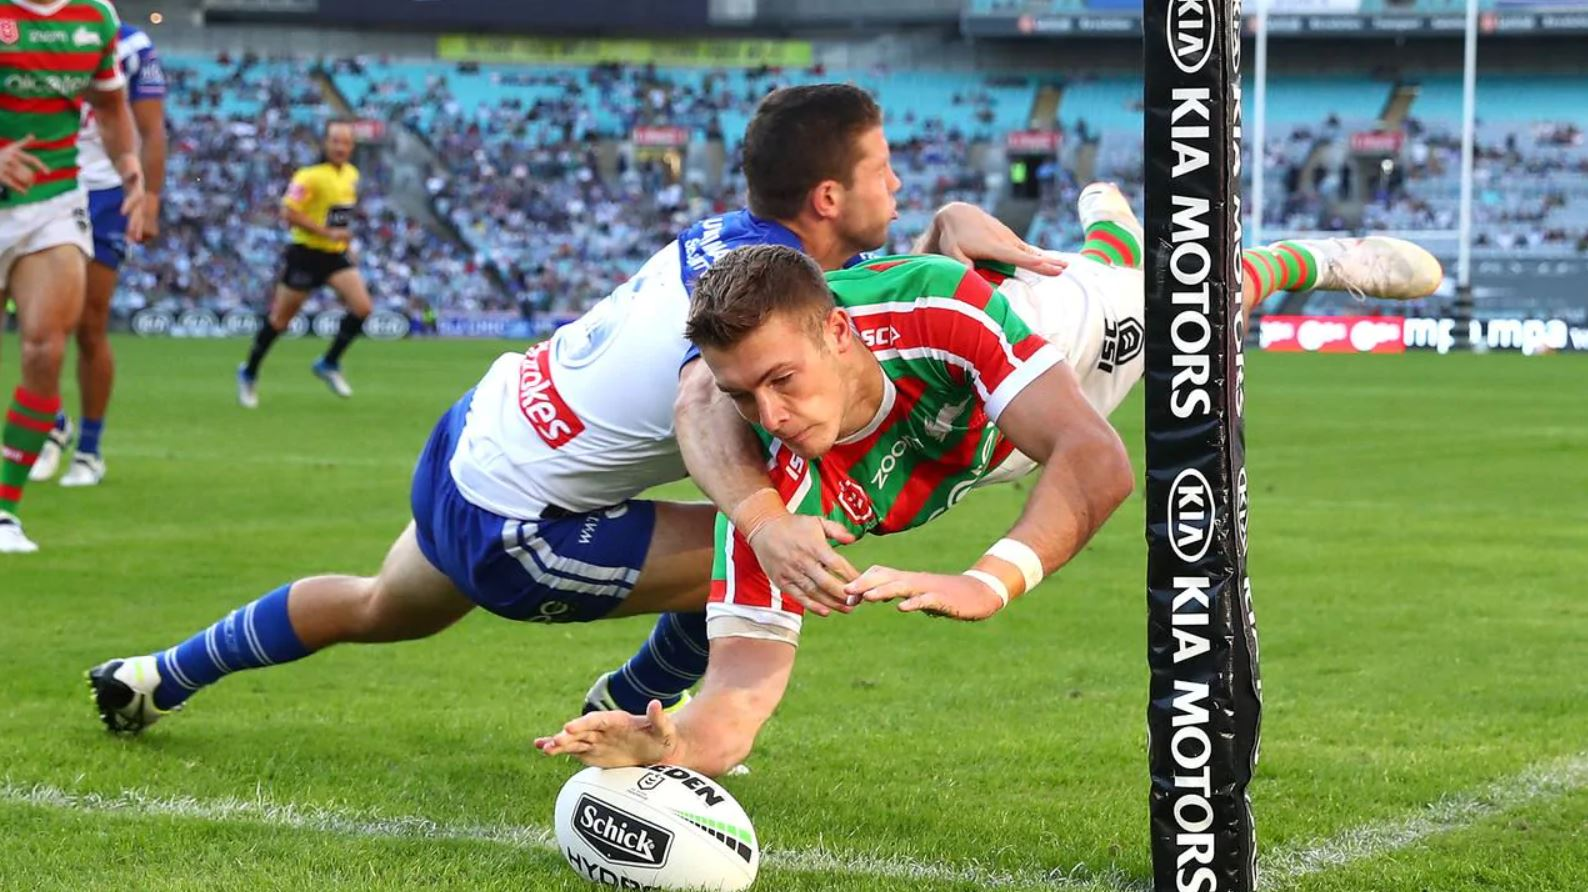 NRL 2020 Fantasy Tips: Round 19 - Rabbitohs v Bulldogs